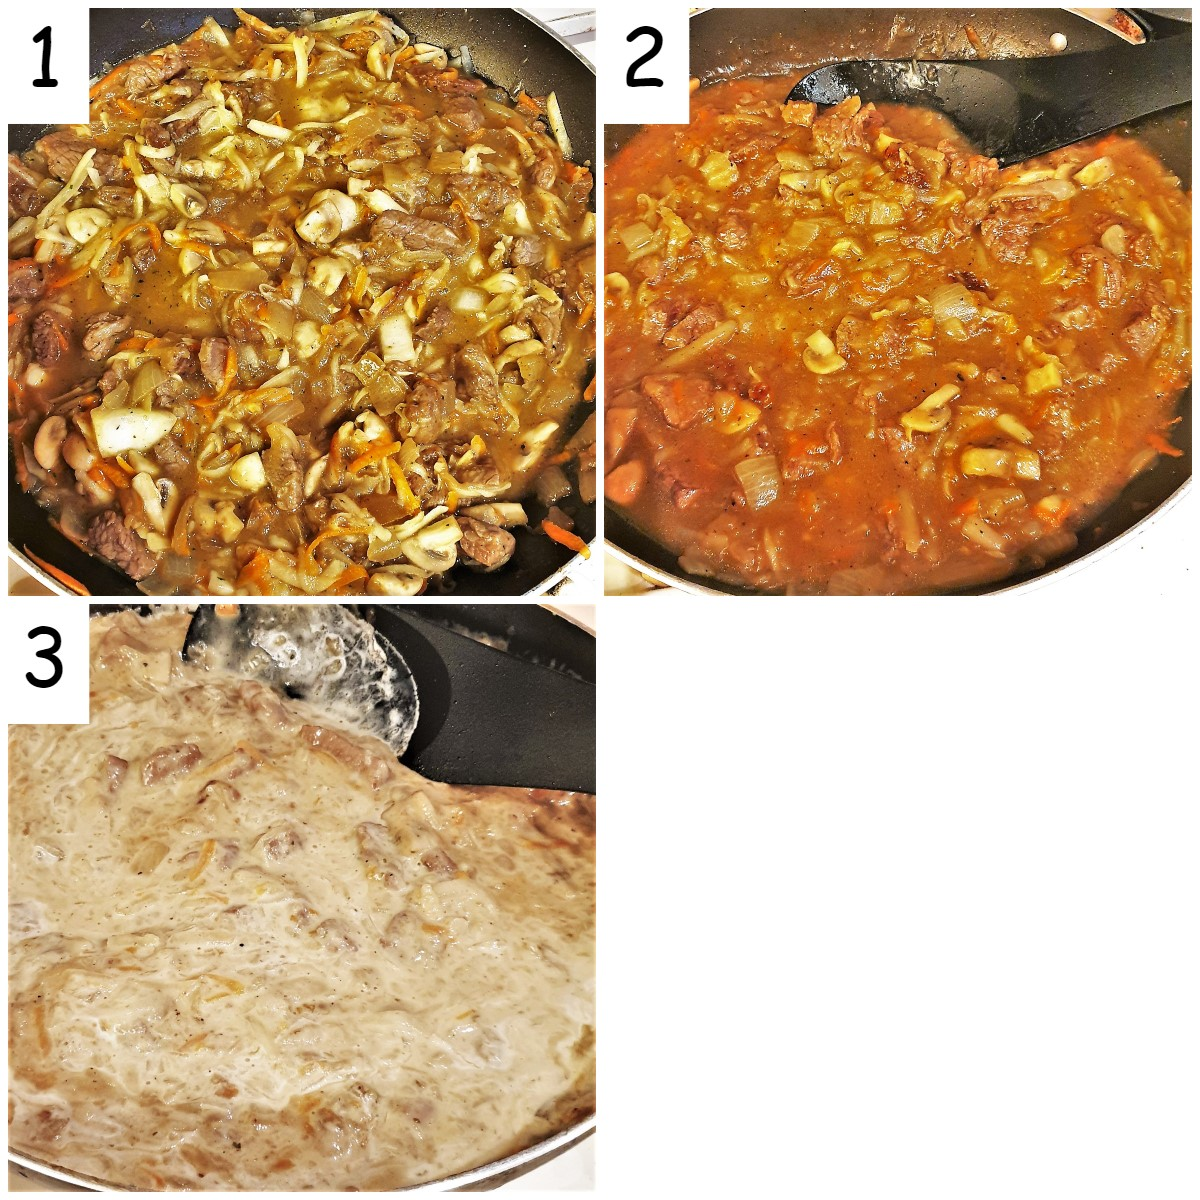 Collage of 3 images showing how to thicken the beef filling with cream.